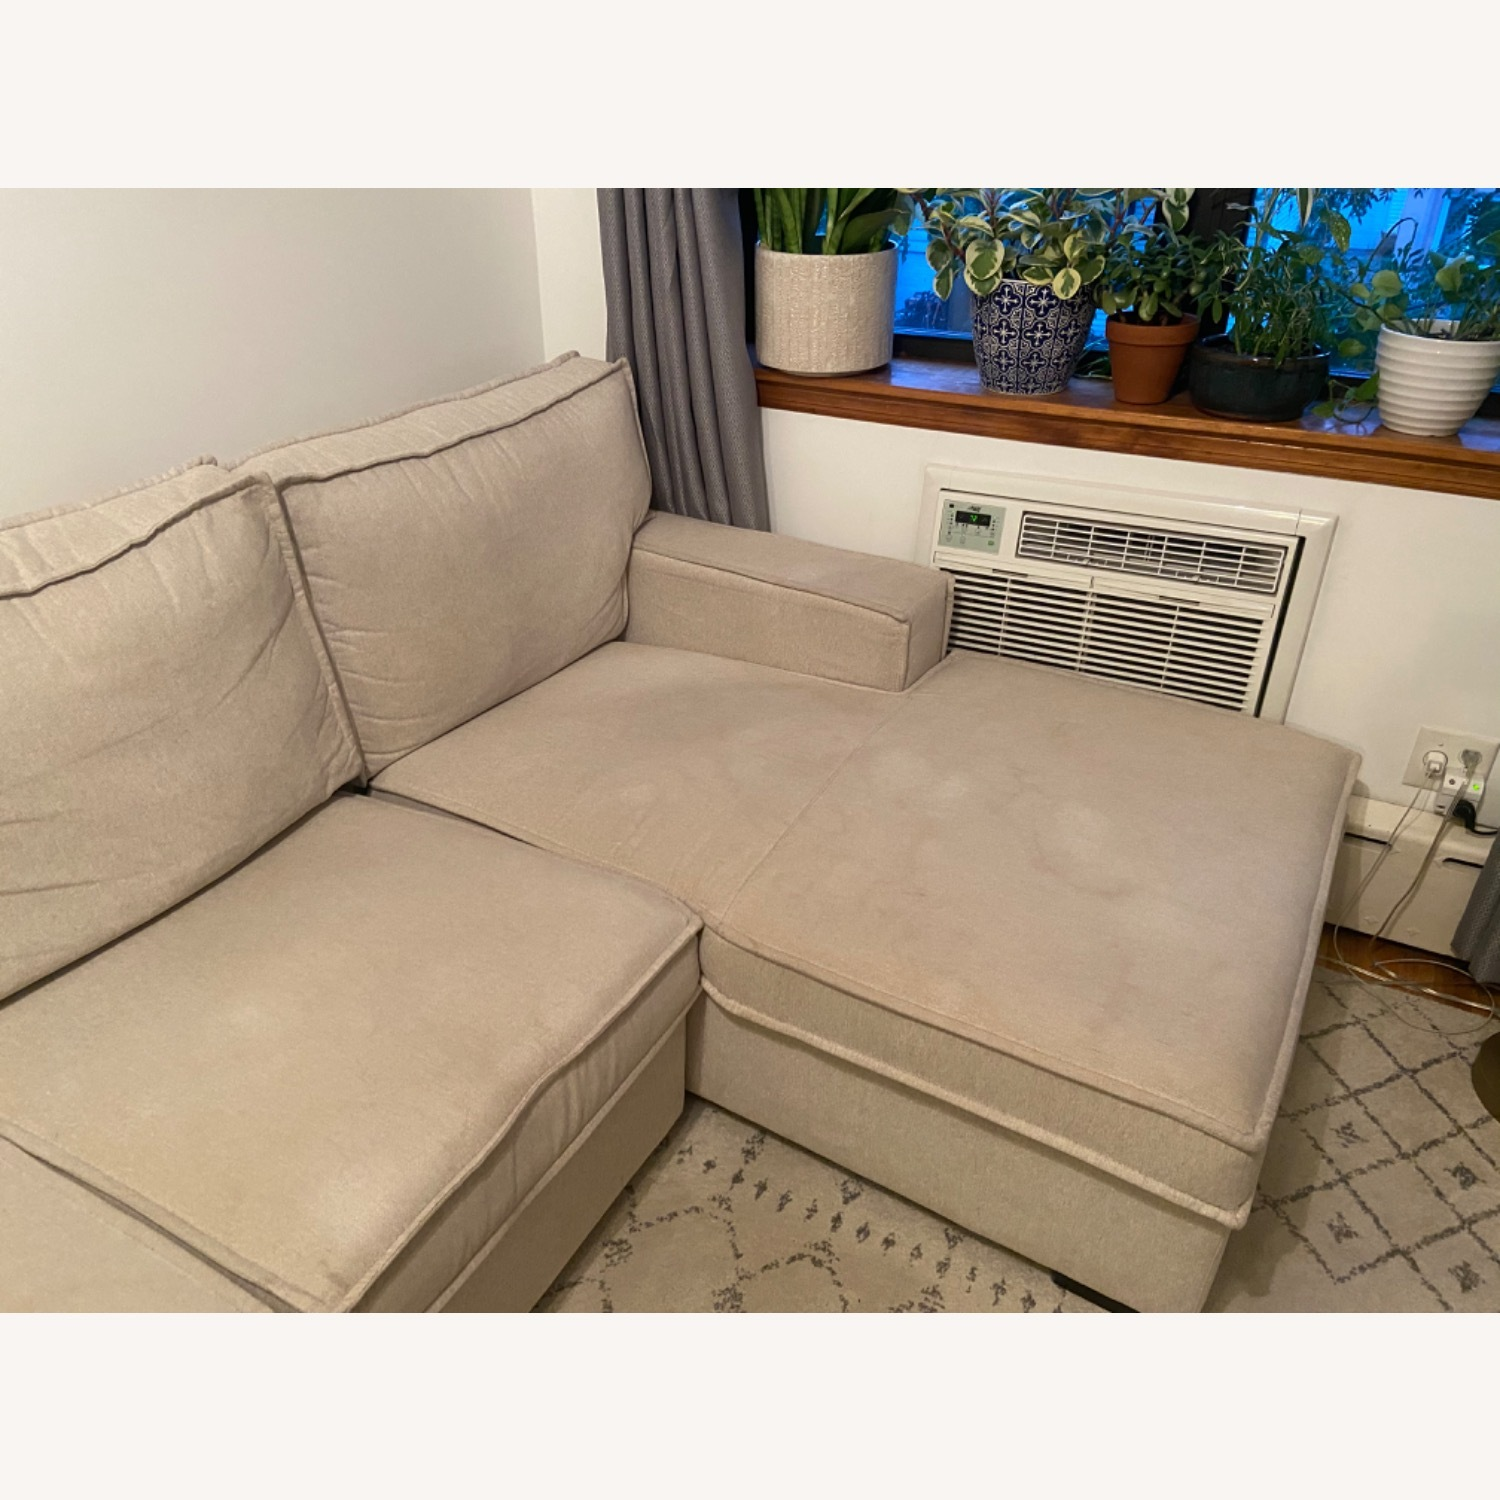 Bob's Discount Sectional with Storage - image-4